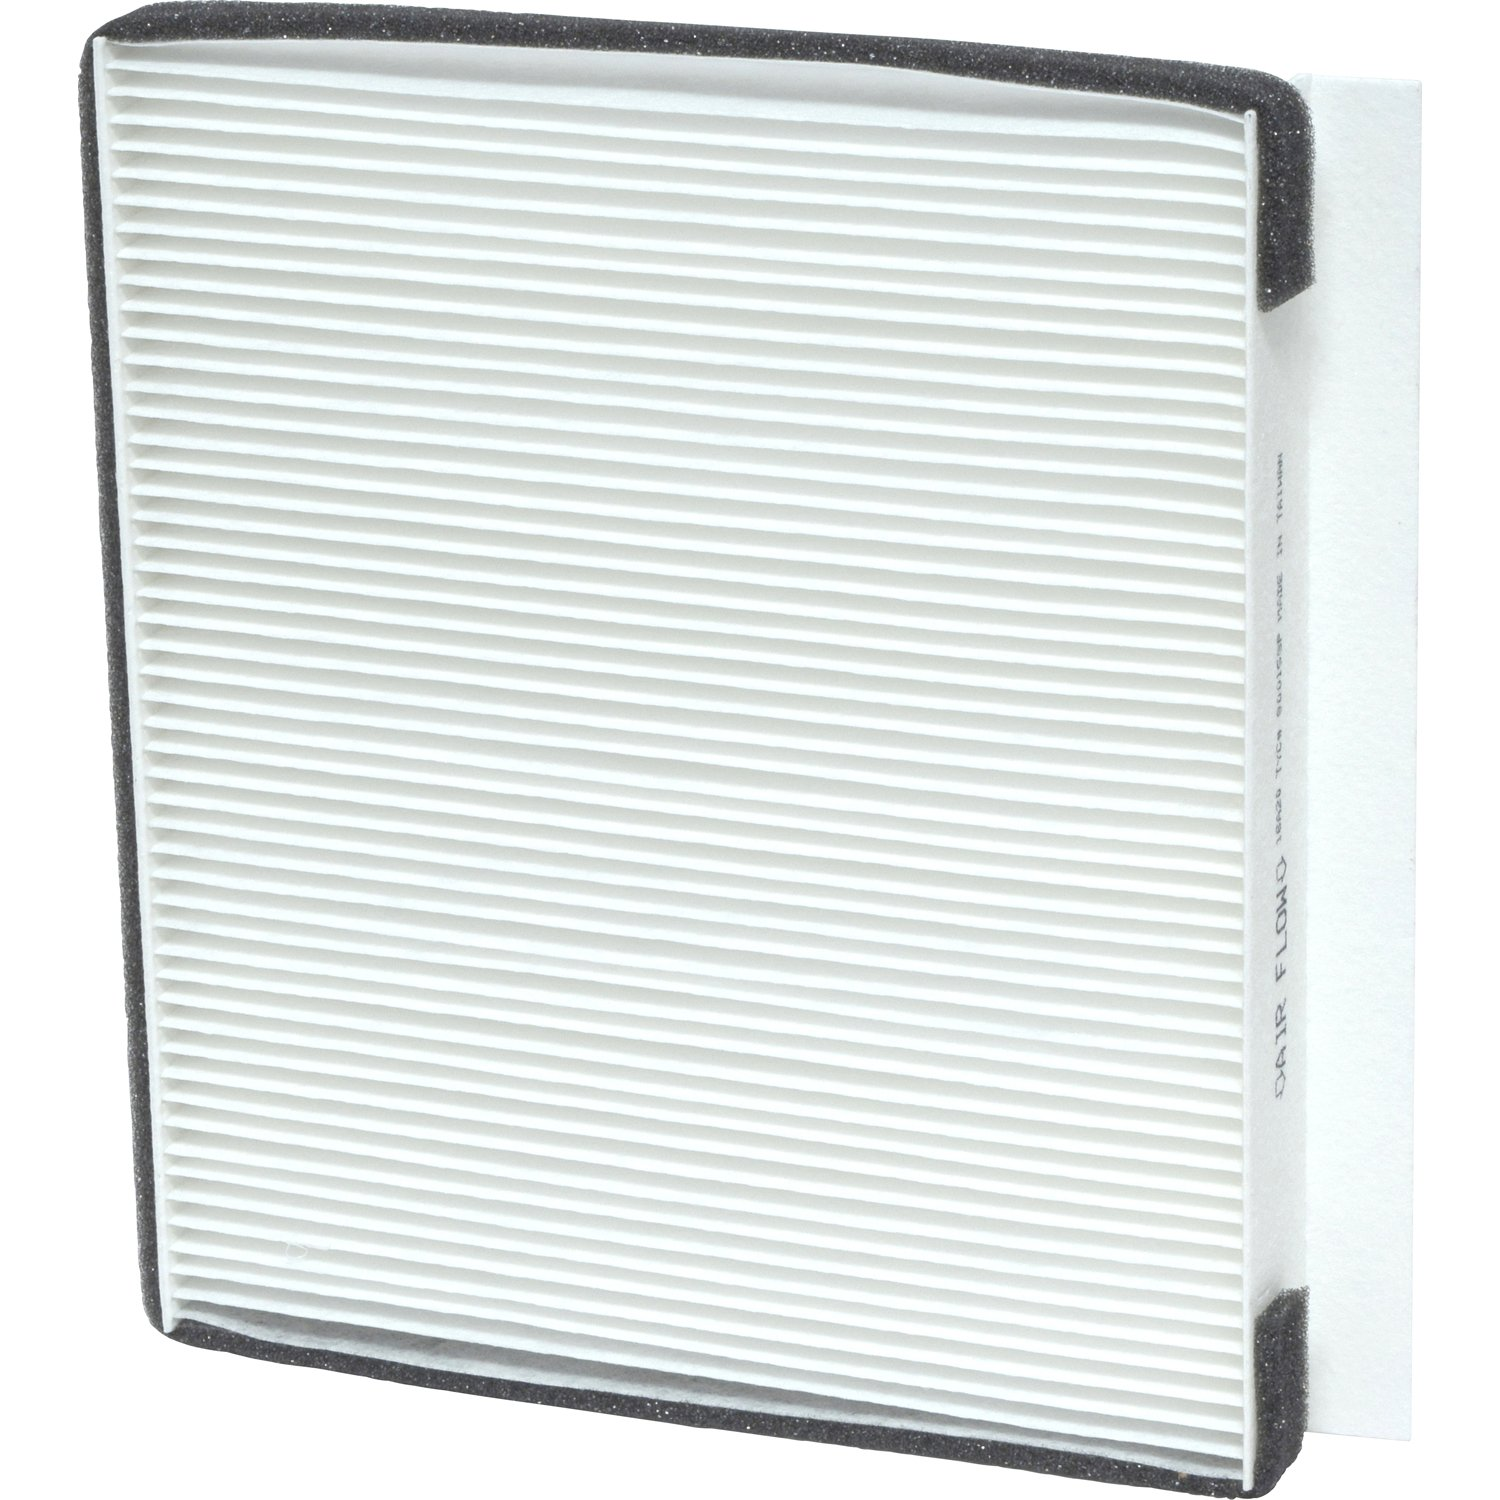 Universal Air Conditioner FI 1216C Cabin Air Filter